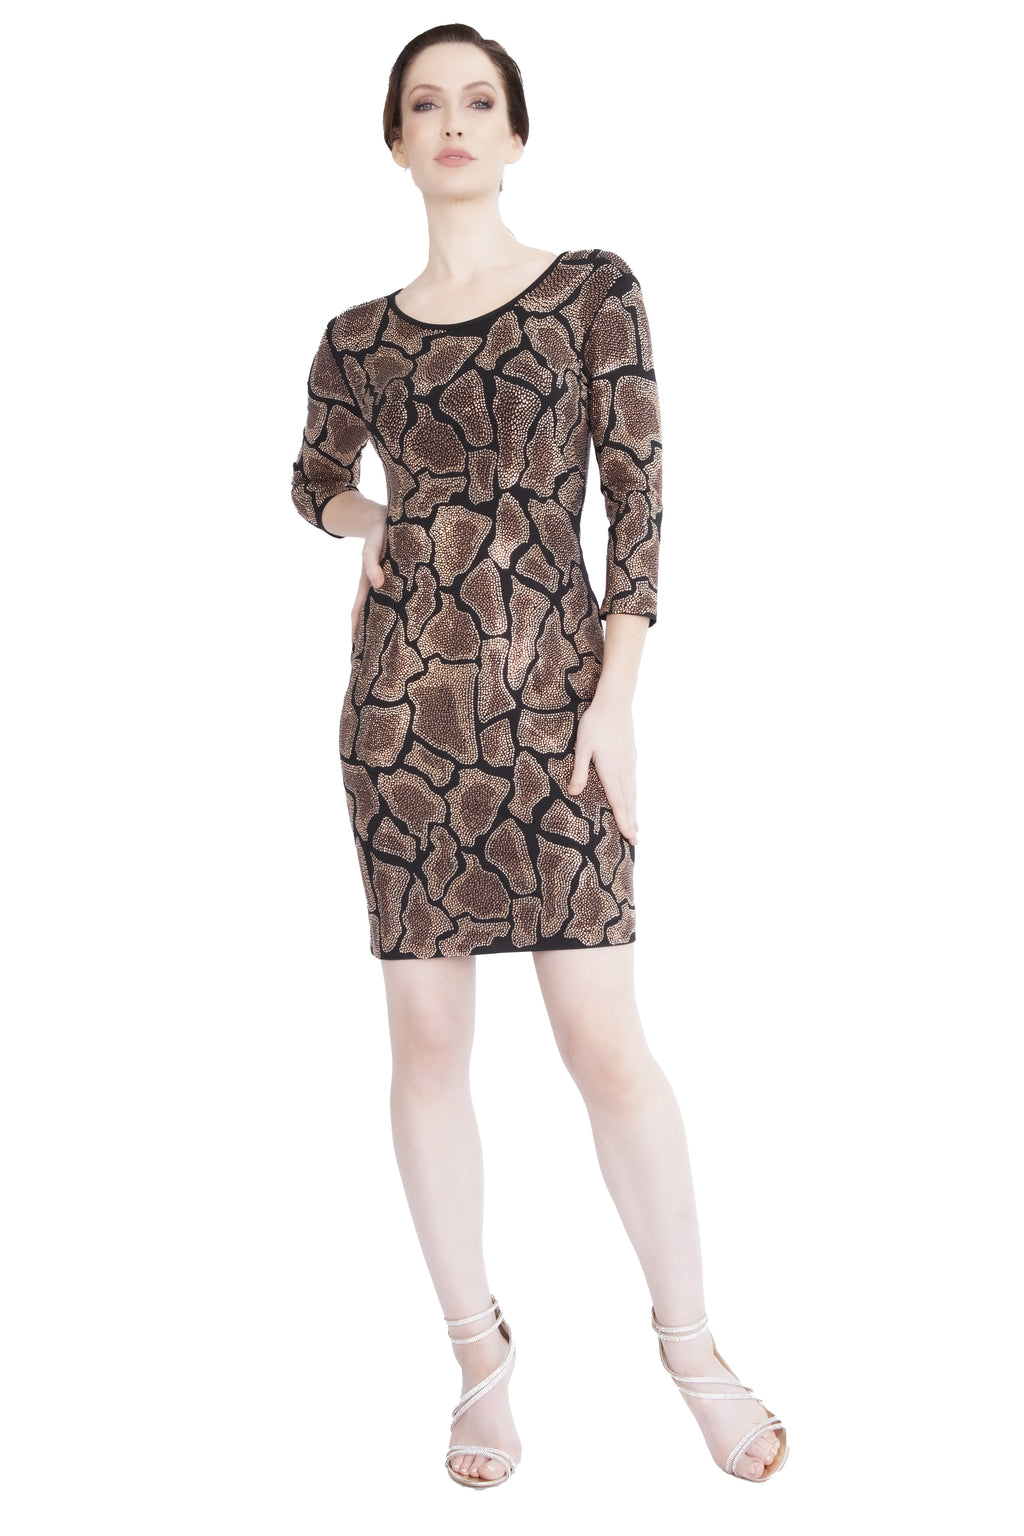 Giraffe 3/4 Sleeve Cocktail Dress - W1500303